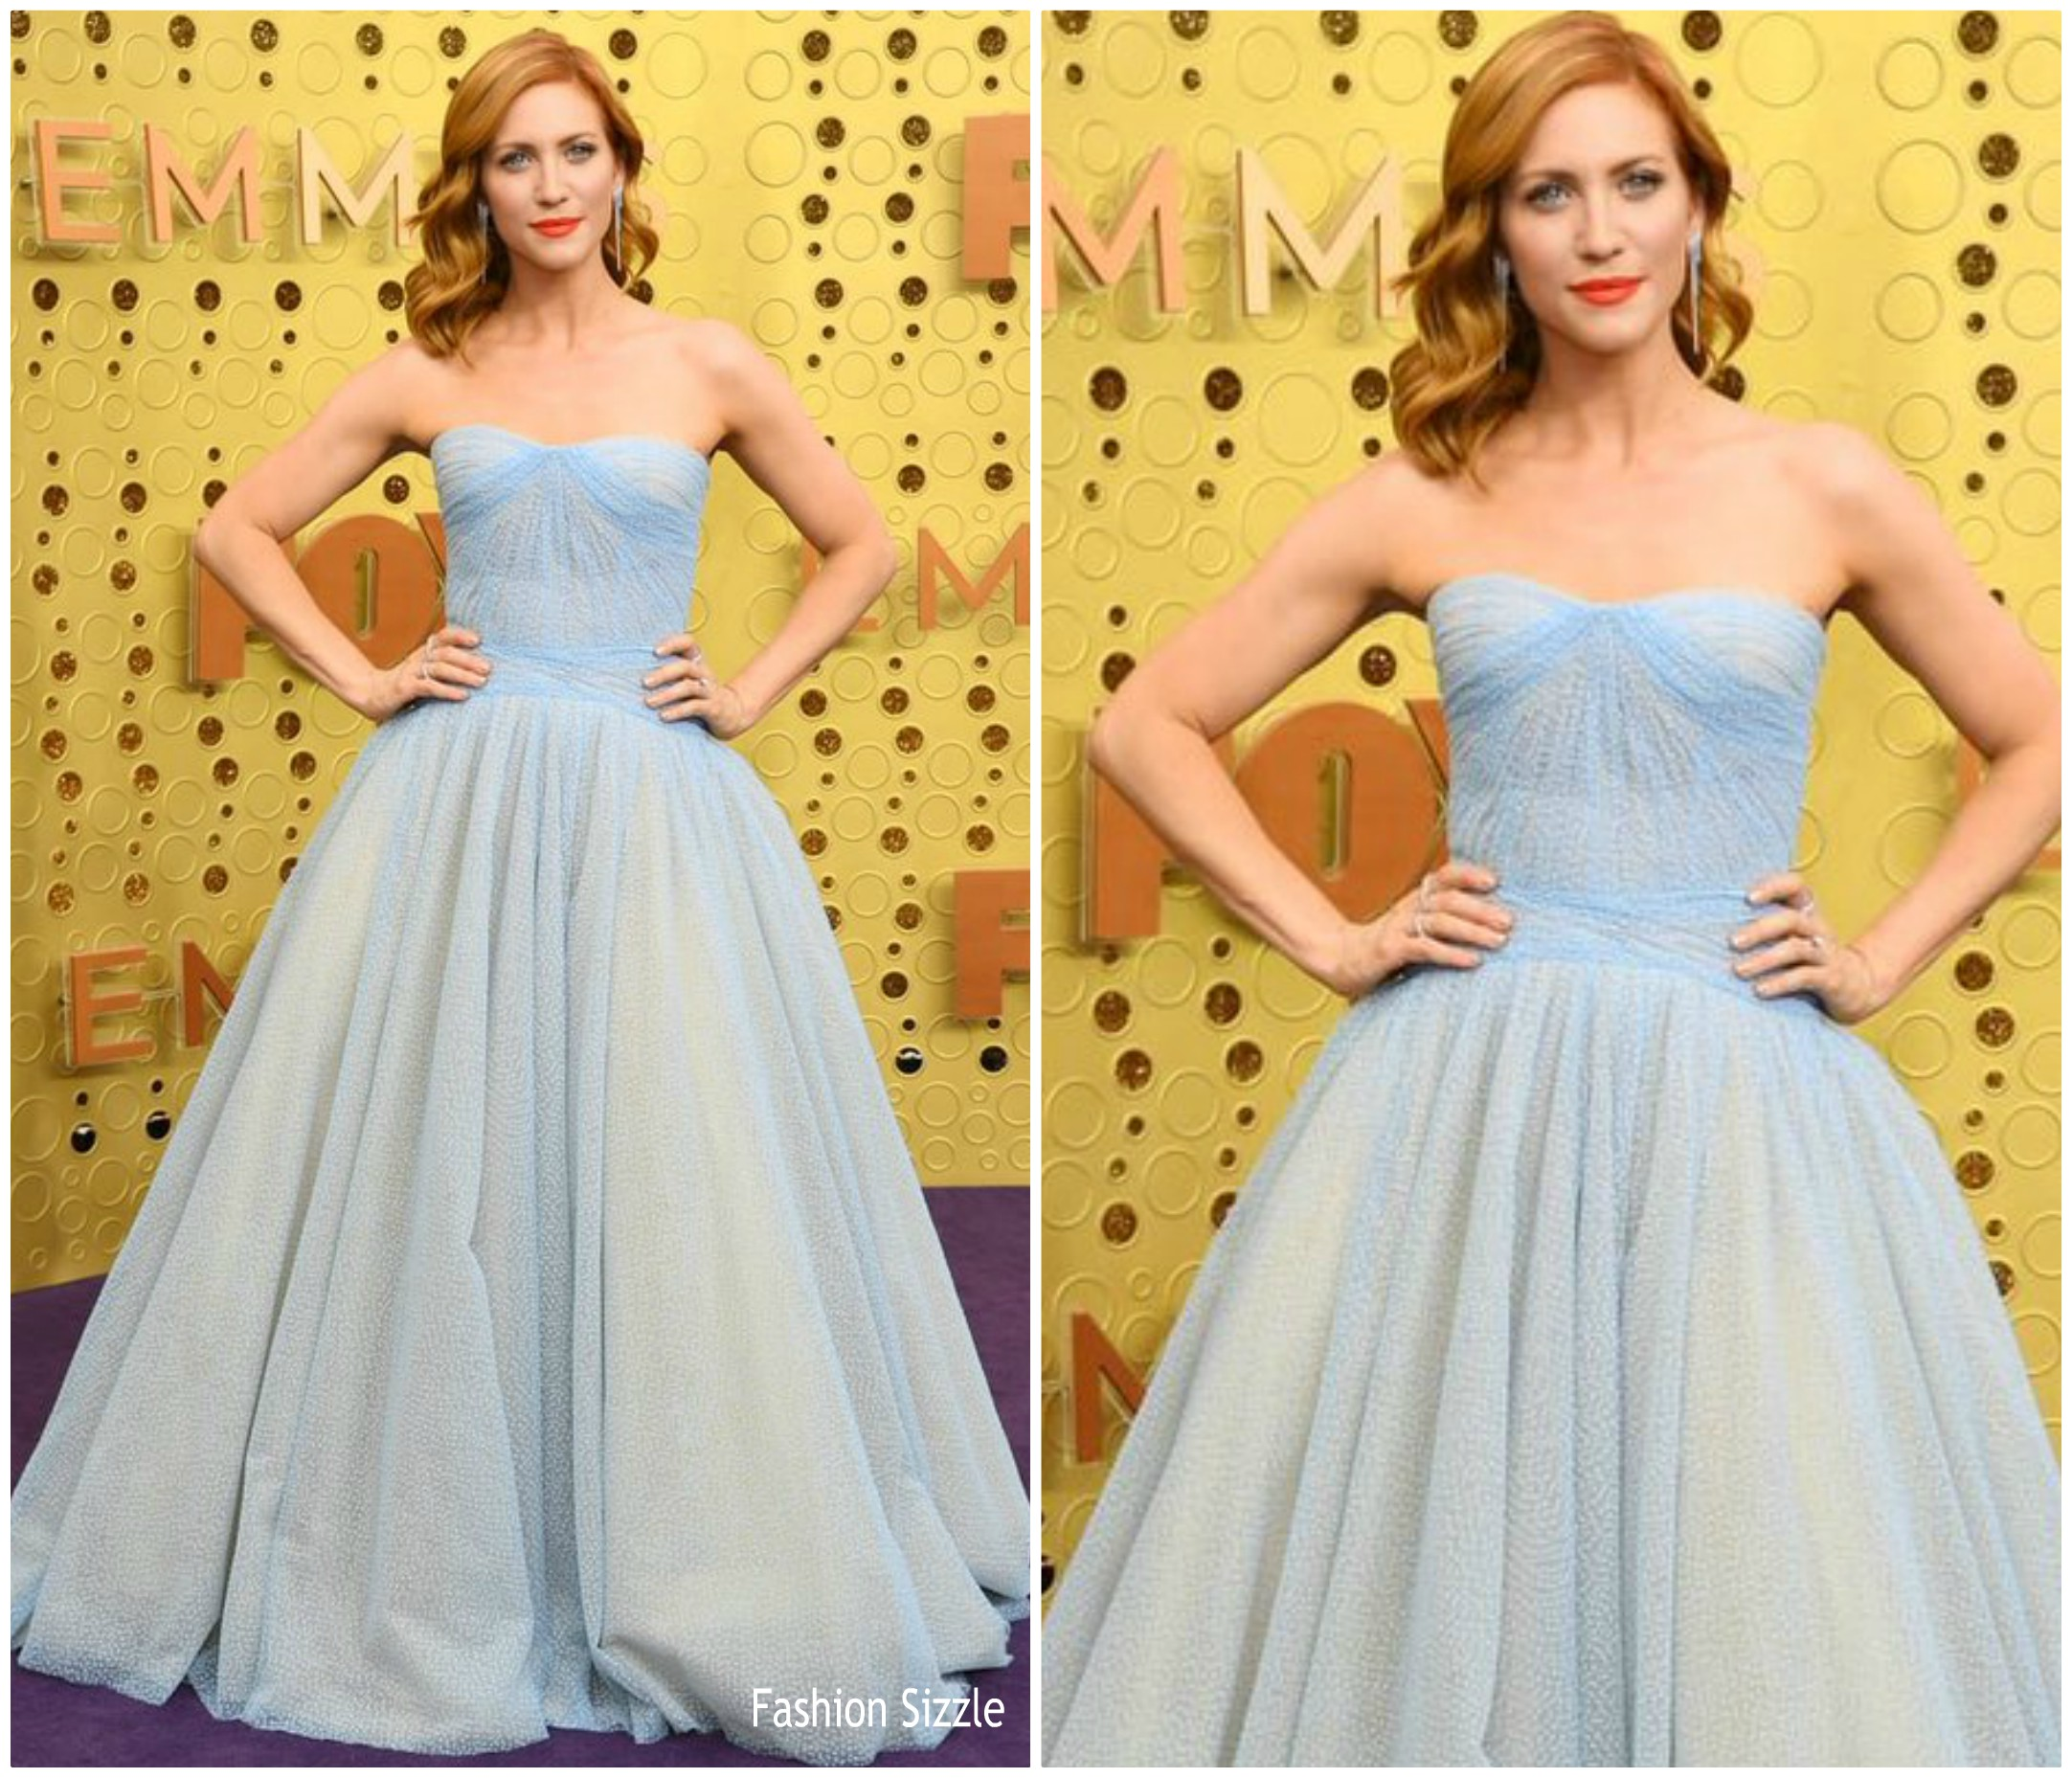 brittany-snow-in-j-mendel-2019-emmy-awards